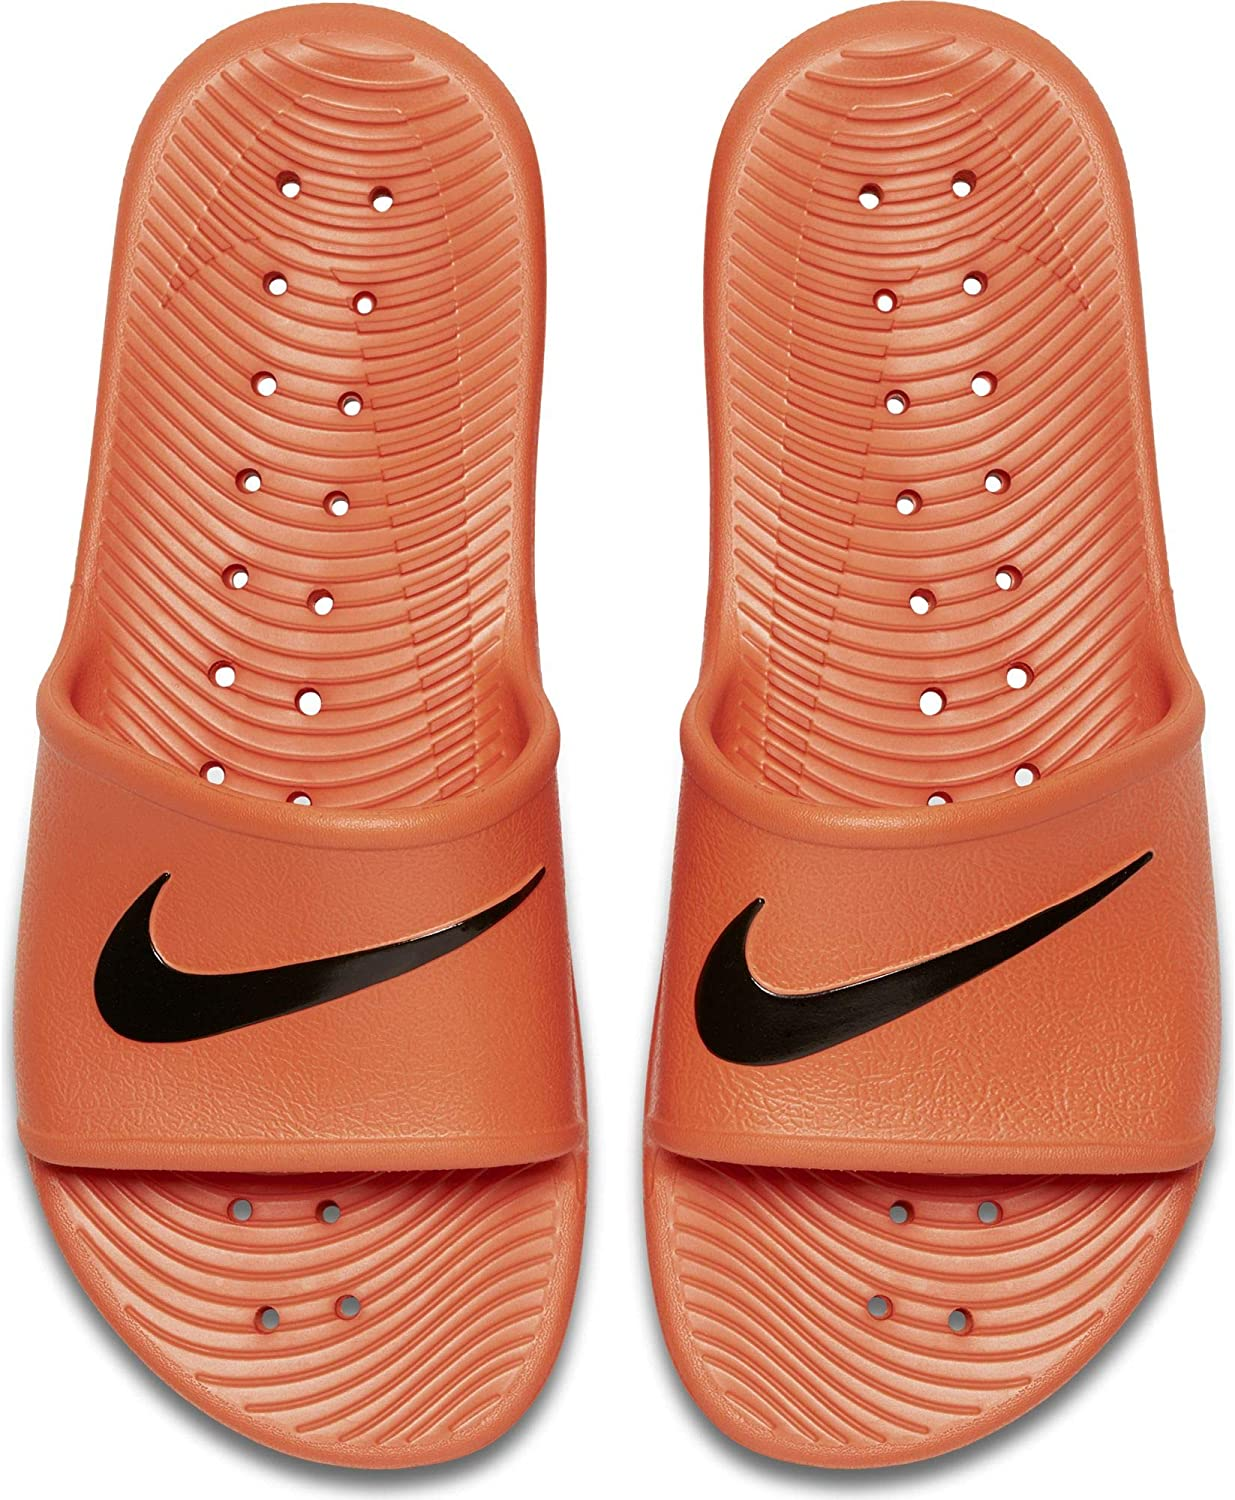 chaussure deplage homme nike